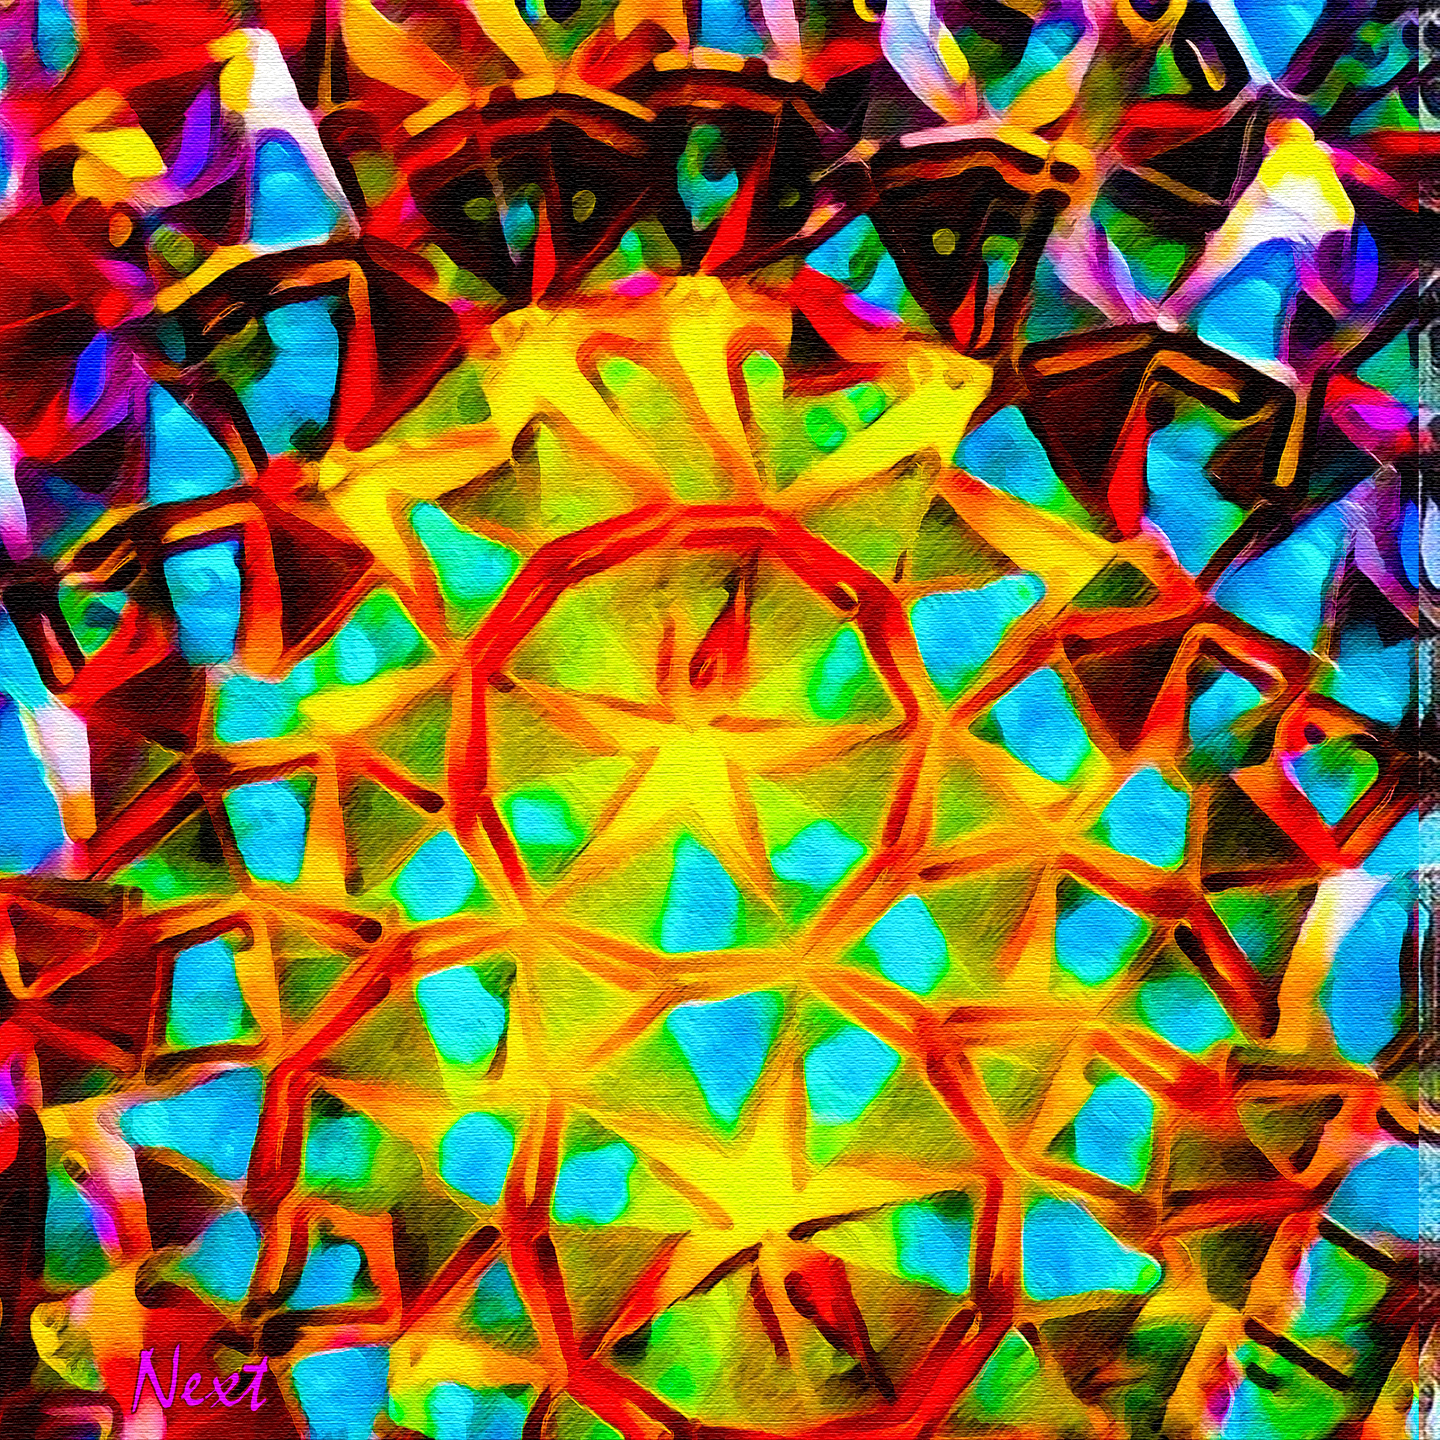 Seen in a Kaleidoscope